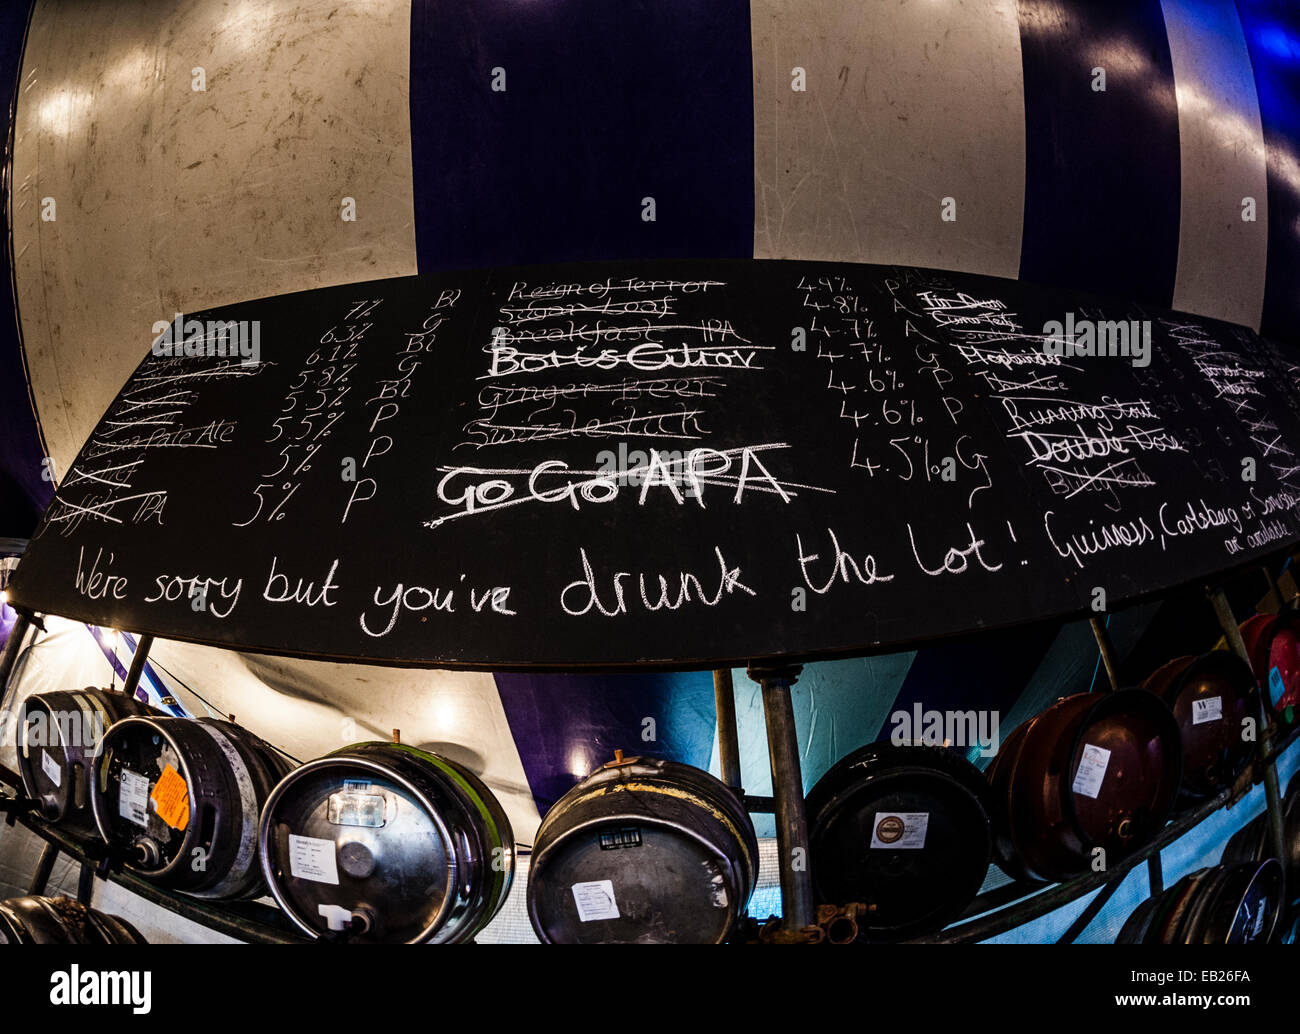 Sold out beers and ales crossed out on blackboard at the Big Tribute music festival Aberystwyth UK August bank holiday - Stock Image